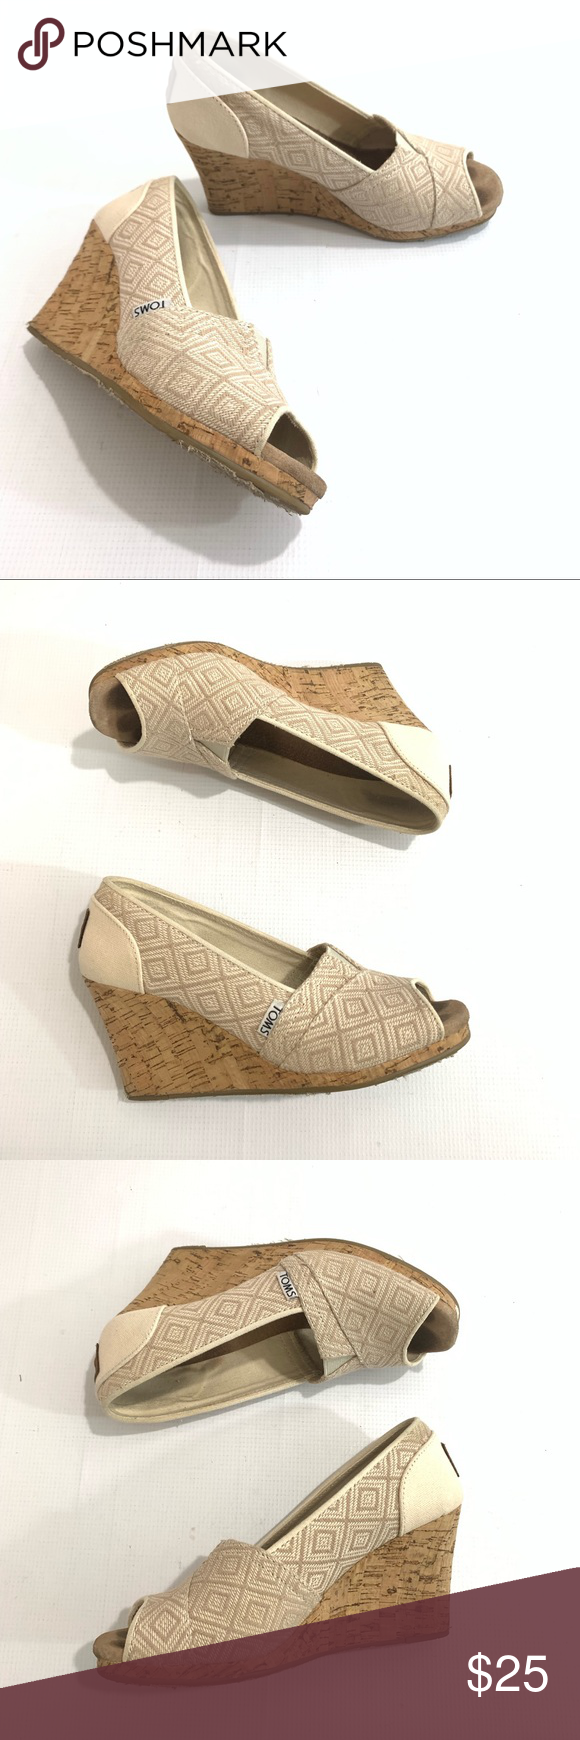 f5ced222dc Toms 381114 Tan Canvas Cork Wedge Sandals Open Toe Toms 381114 Tan Canvas  Cork Wedge Sandals Open Toe Women Sz 6.5 Preowned and gently used.